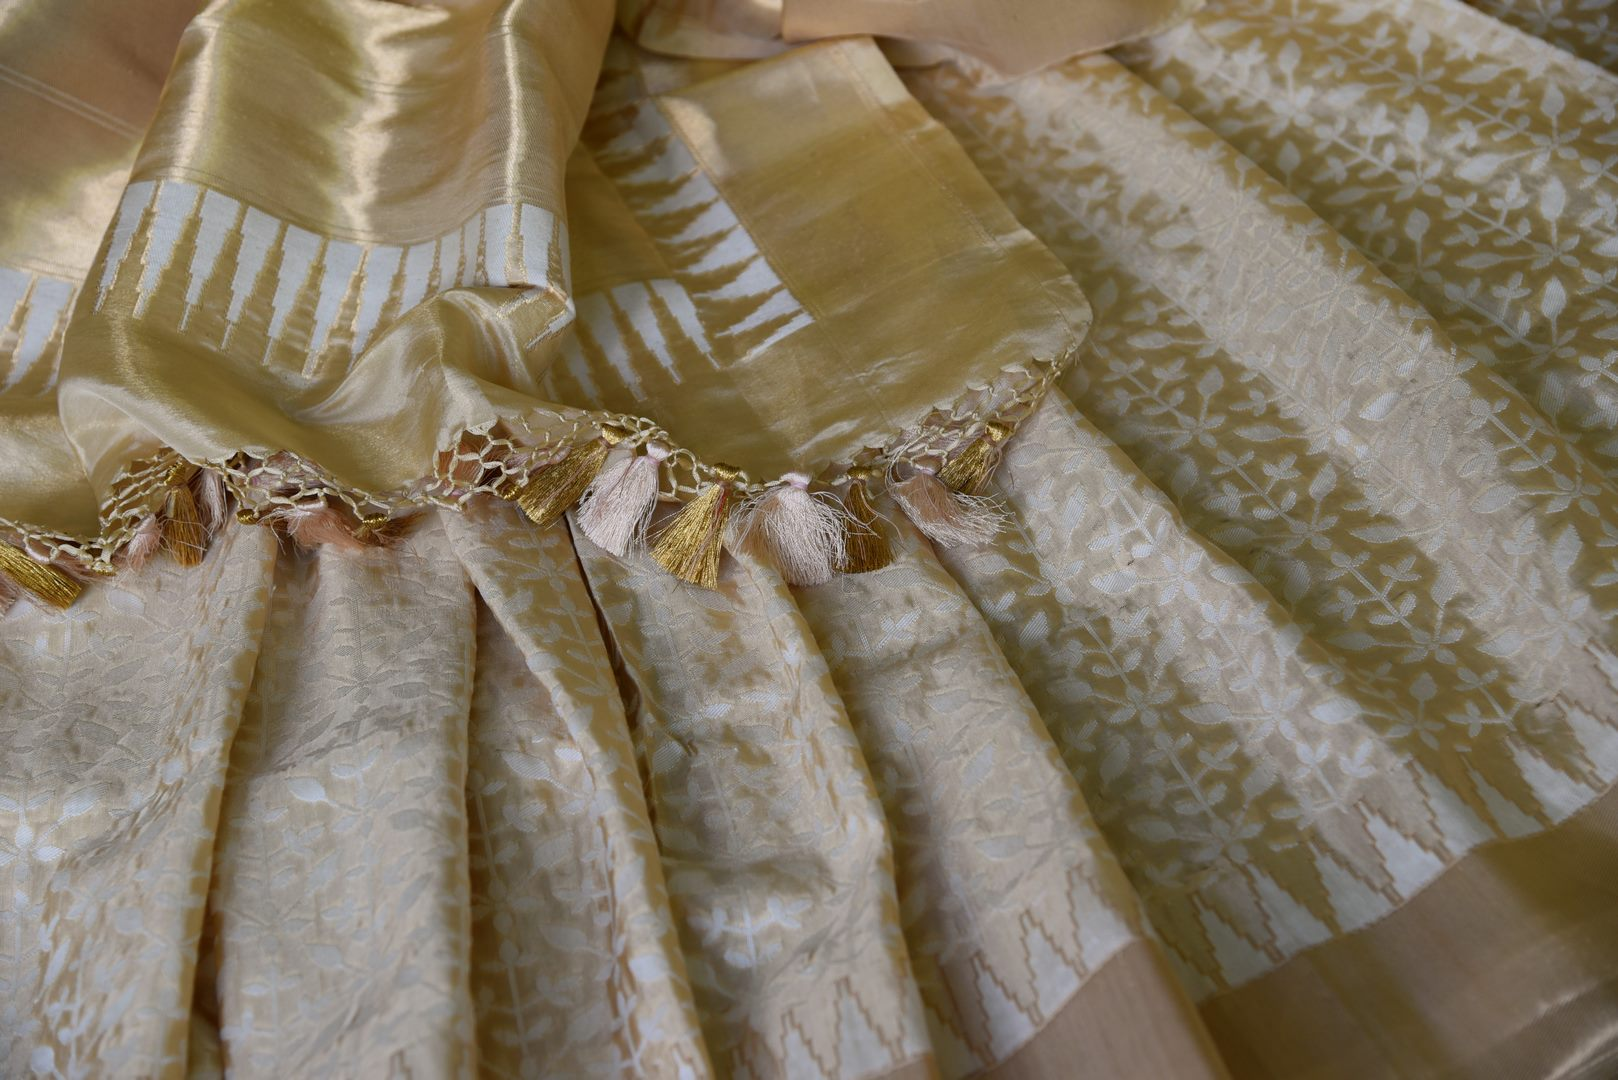 Captivating gold Benarasi silk saree with zari border buy online in USA and white floral design. Adorn your style with a range of exquisite handloom sarees from Pure Elegance Indian clothing store in USA. We have an exquisite range of Indian designer sarees, silk sarees, Banarasi saris and many other varieties also available at our online store.-details